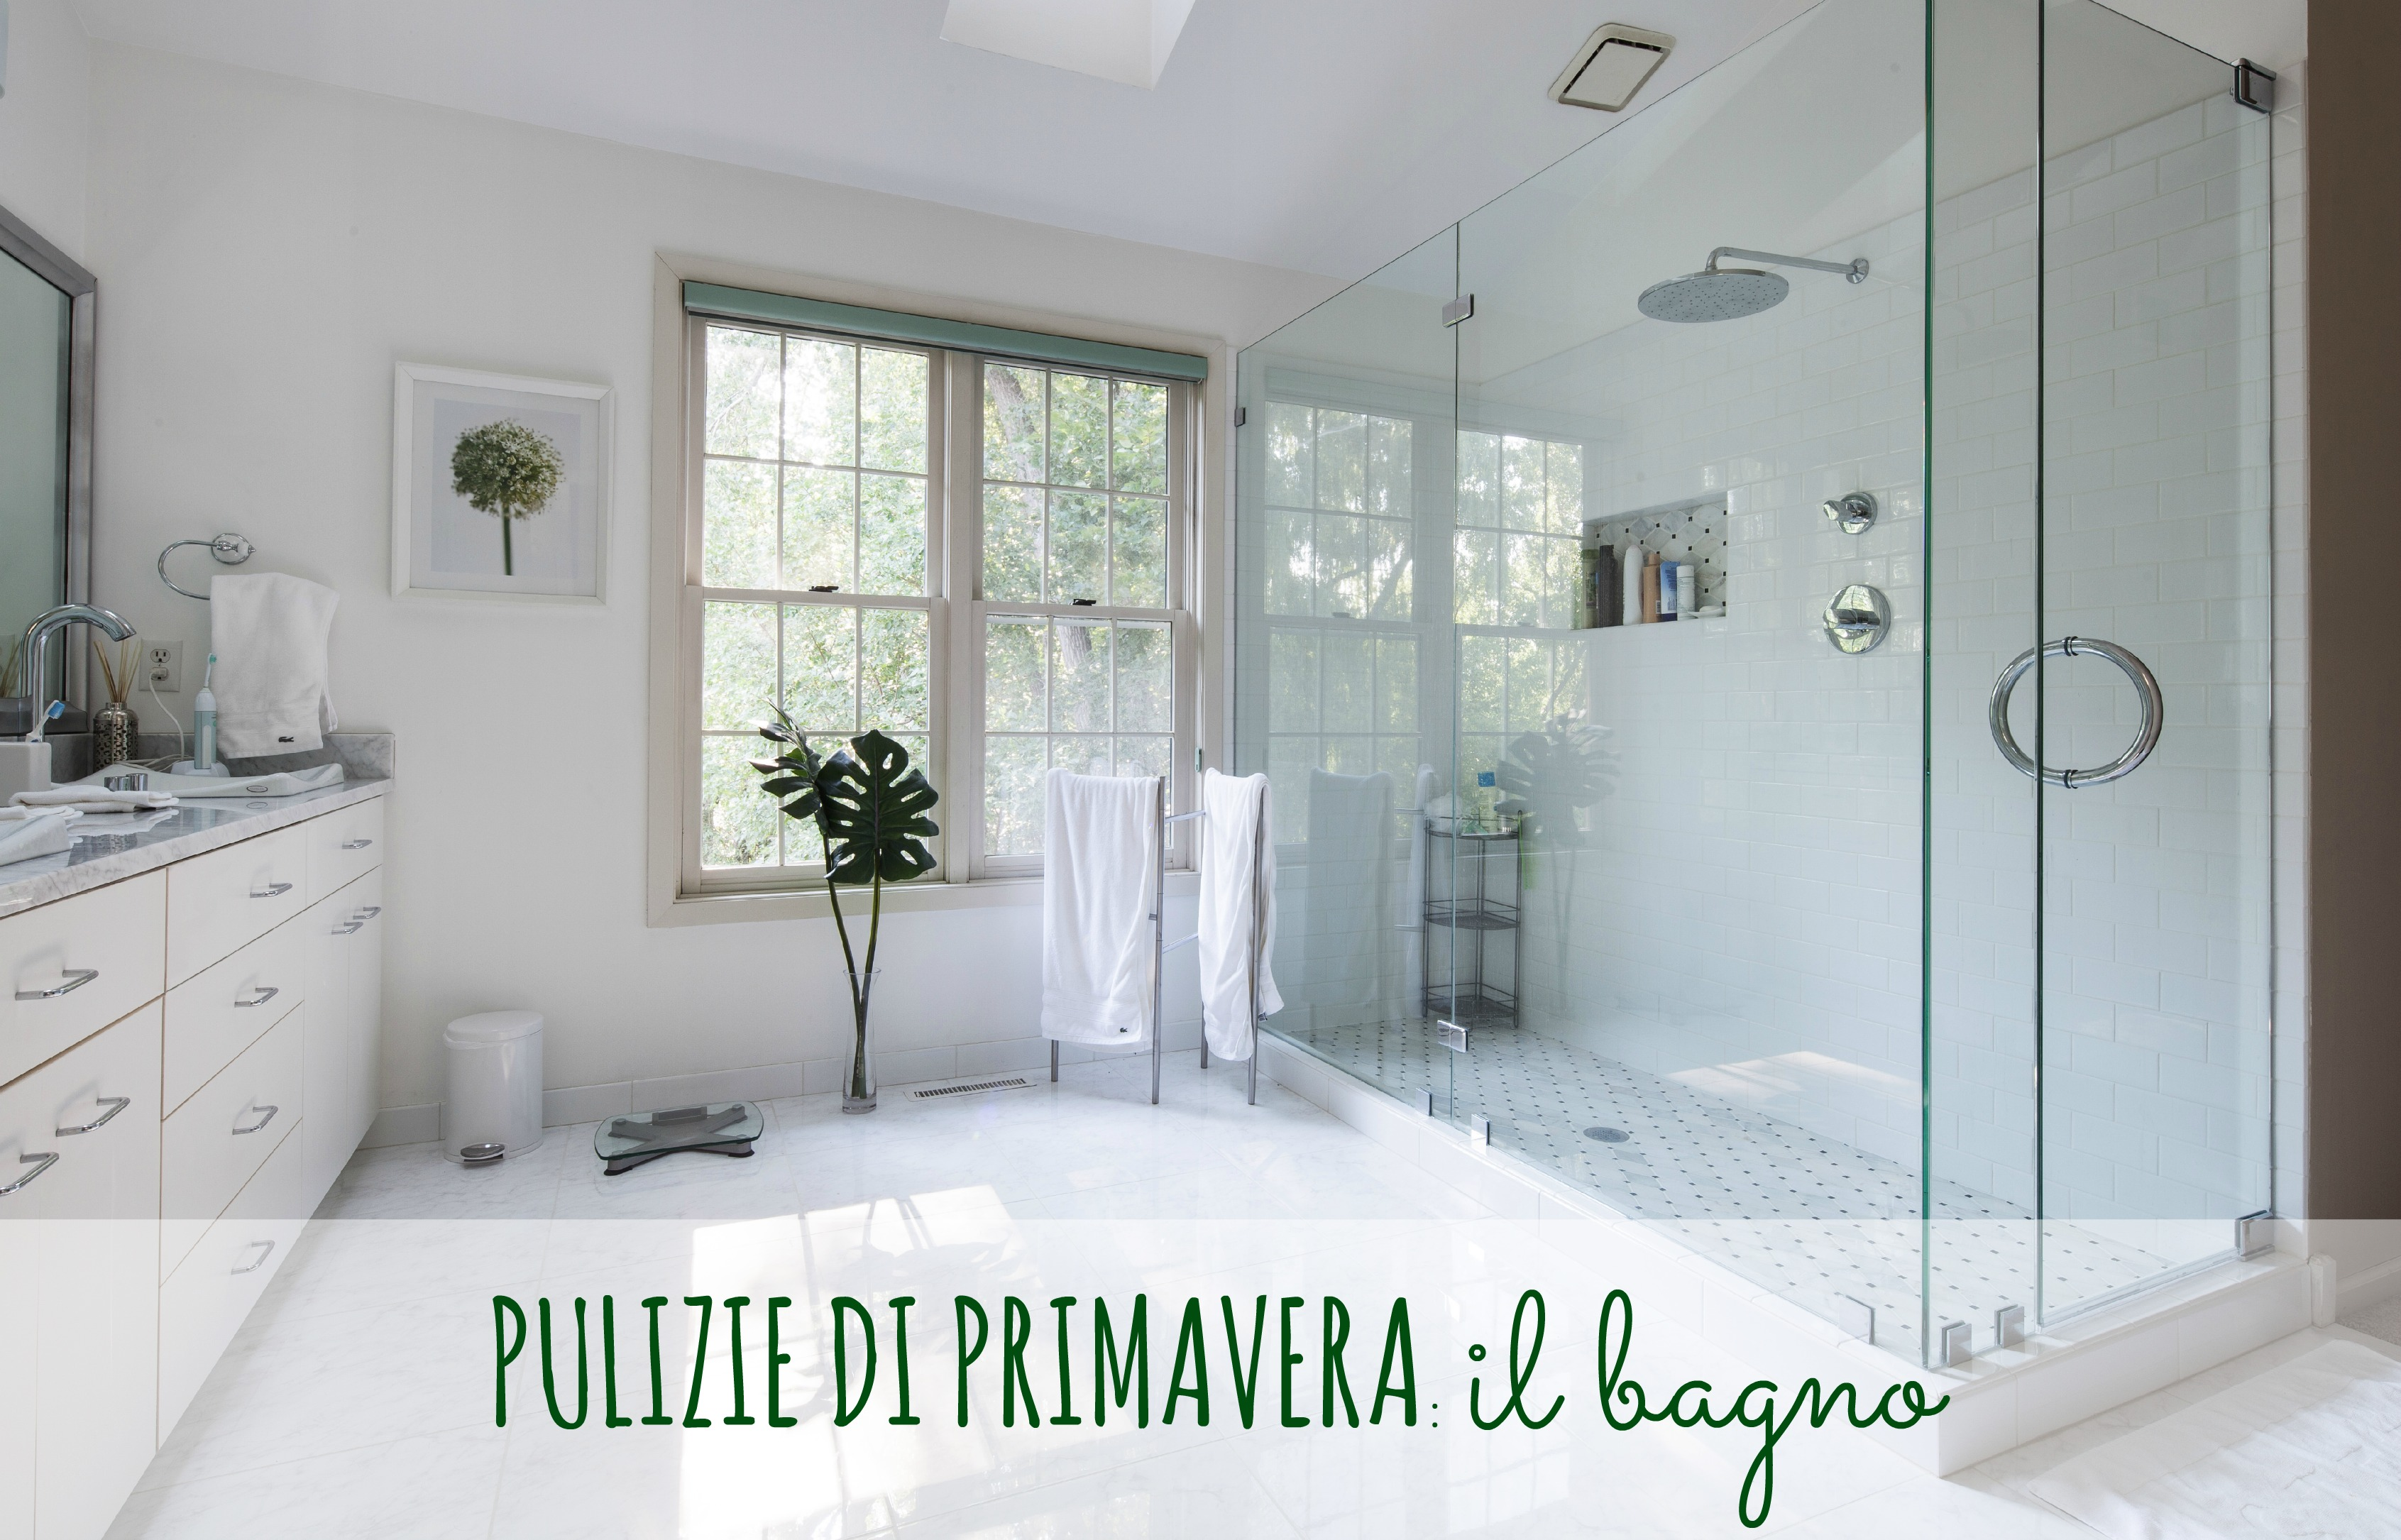 Pulizie di primavera il bagno babygreen for Bathroom design 2m x 2m